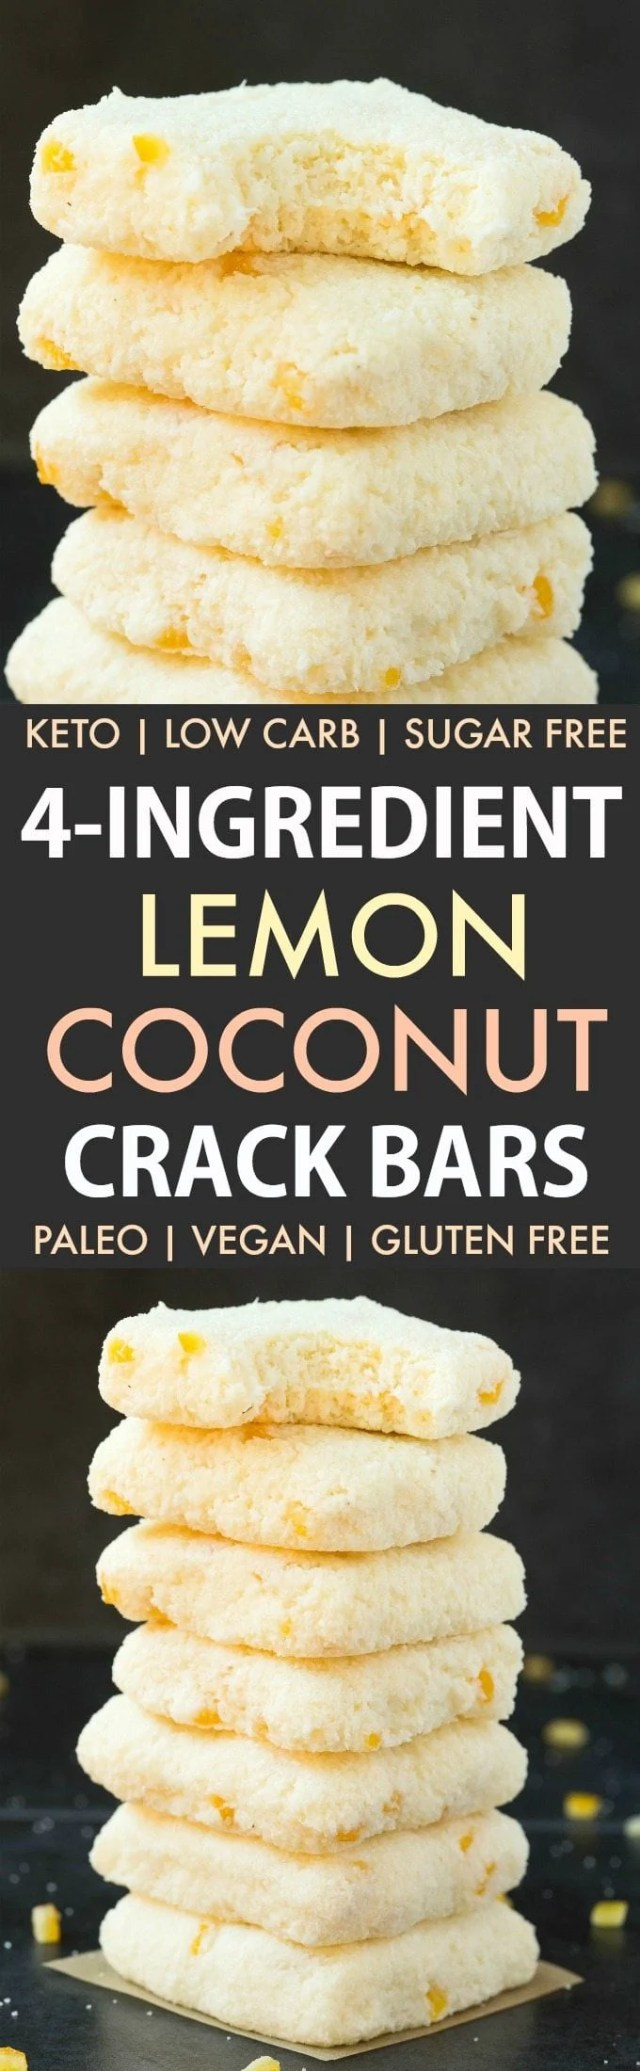 4-Ingredient No Bake Lemon Coconut Crack Bars (Paleo, Vegan, Keto, Sugar Free, Gluten Free)-An Easy, healthy and seriously addictive lemon coconut bars recipe using just 4 ingredients and needing 5 minutes! A delicious ketogenic dessert or snack! #keto #ketodessert #coconut #lemon #healthy #nobake   Recipe on thebigmansworld.com